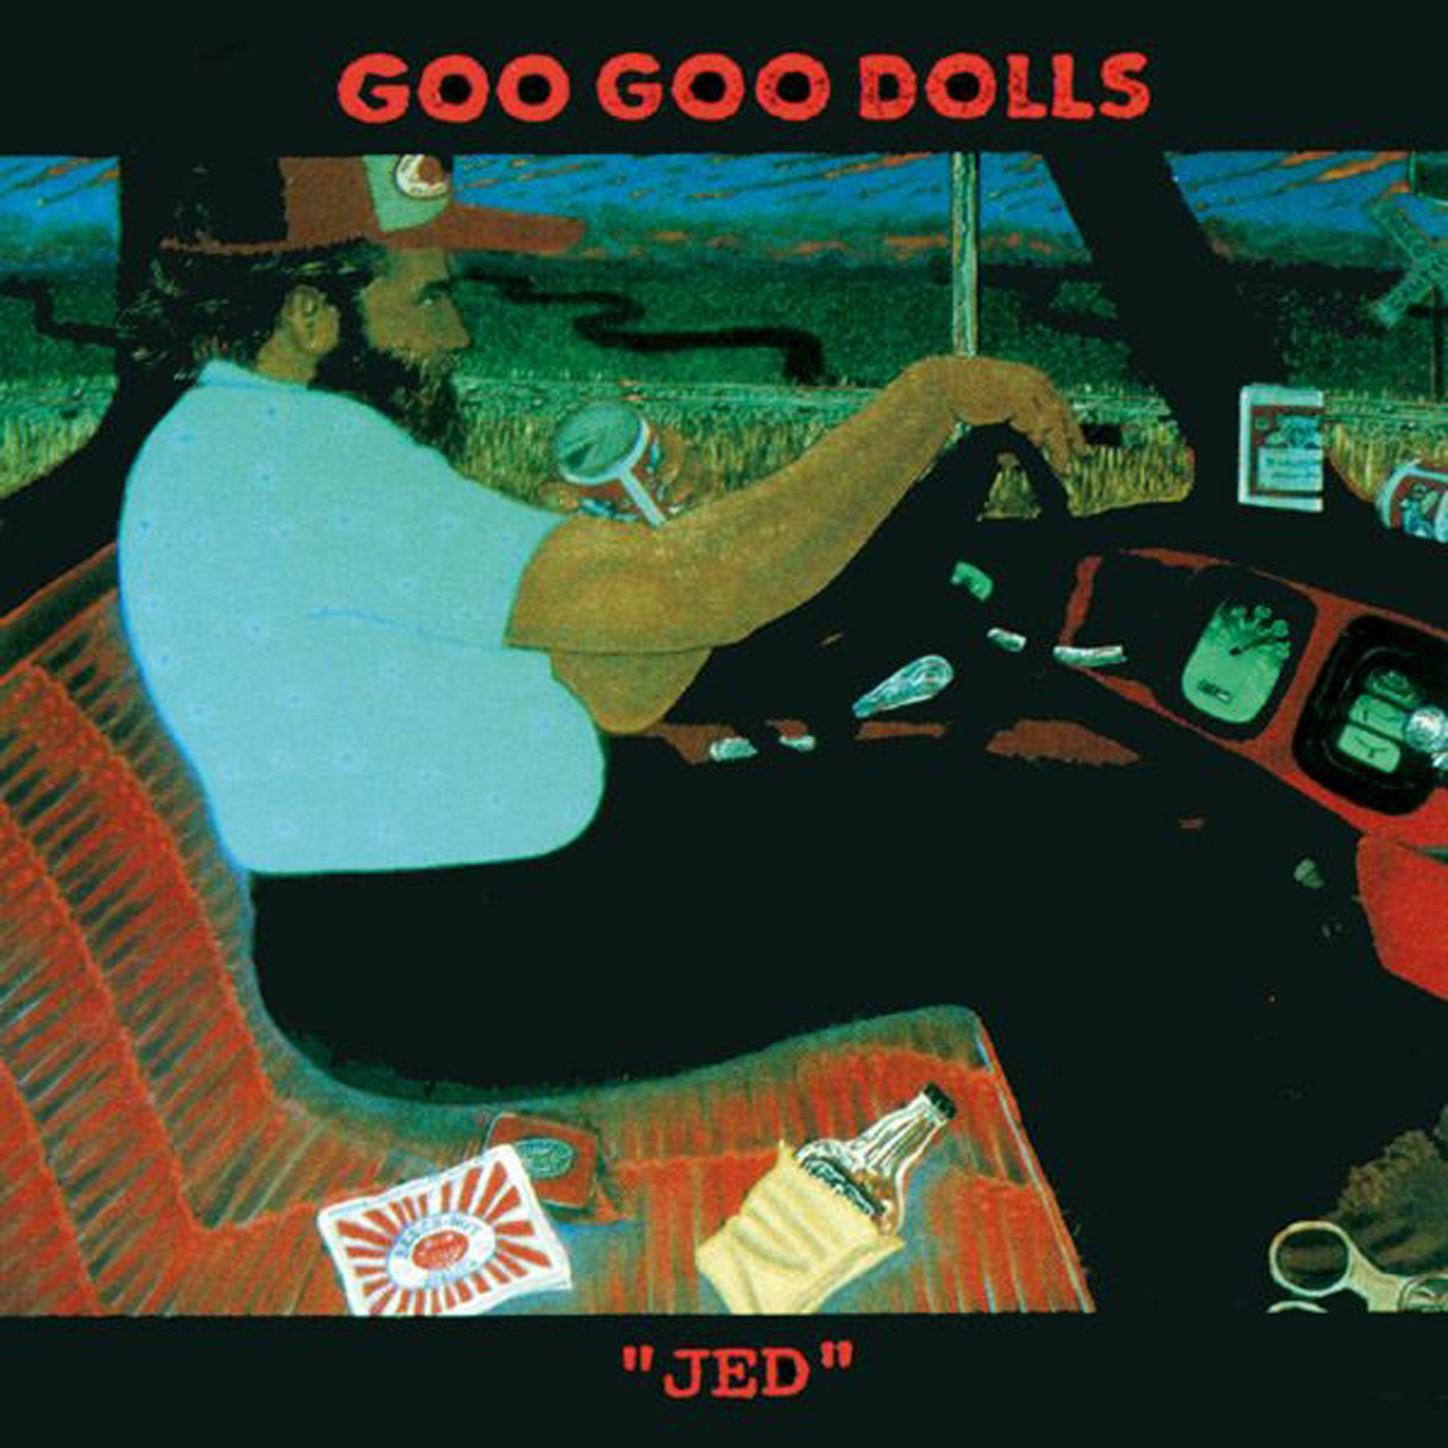 The Goo Goo Dolls - Jed LP